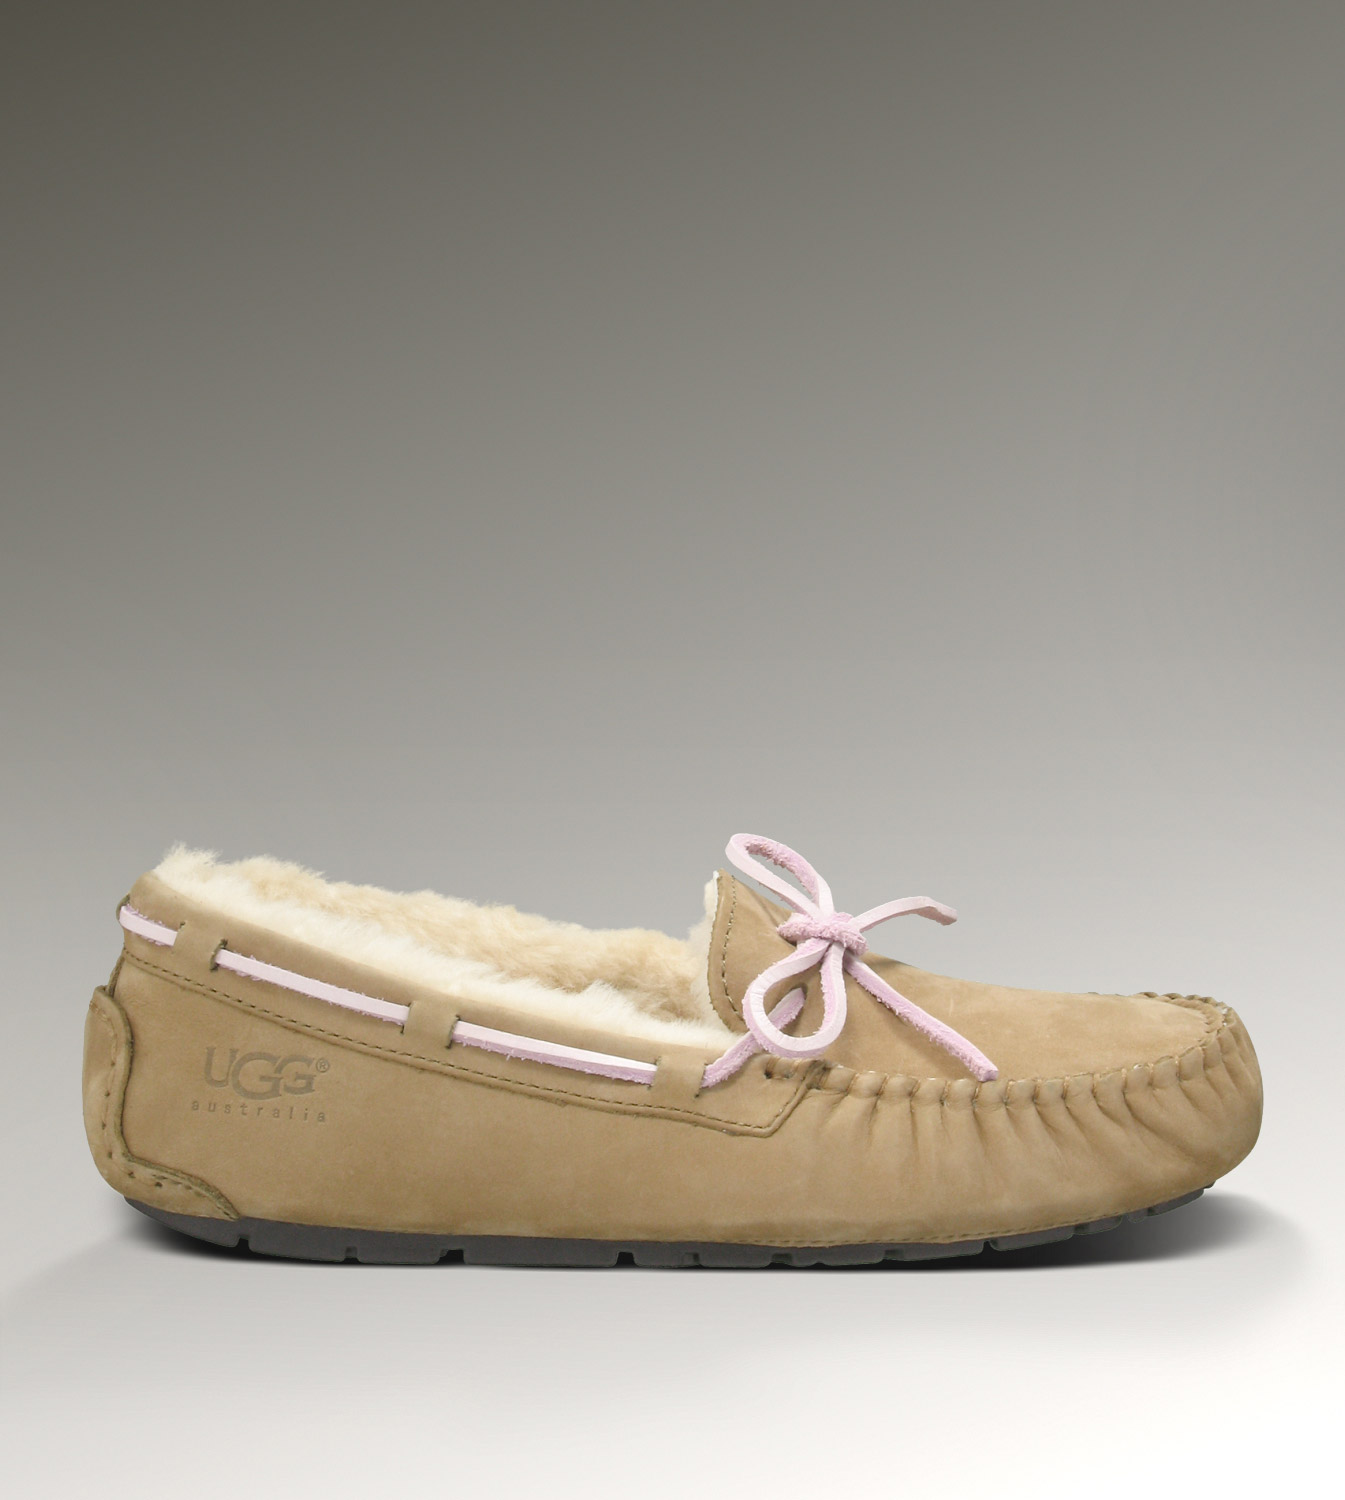 UGG Dakota 5612 Sand Slippers